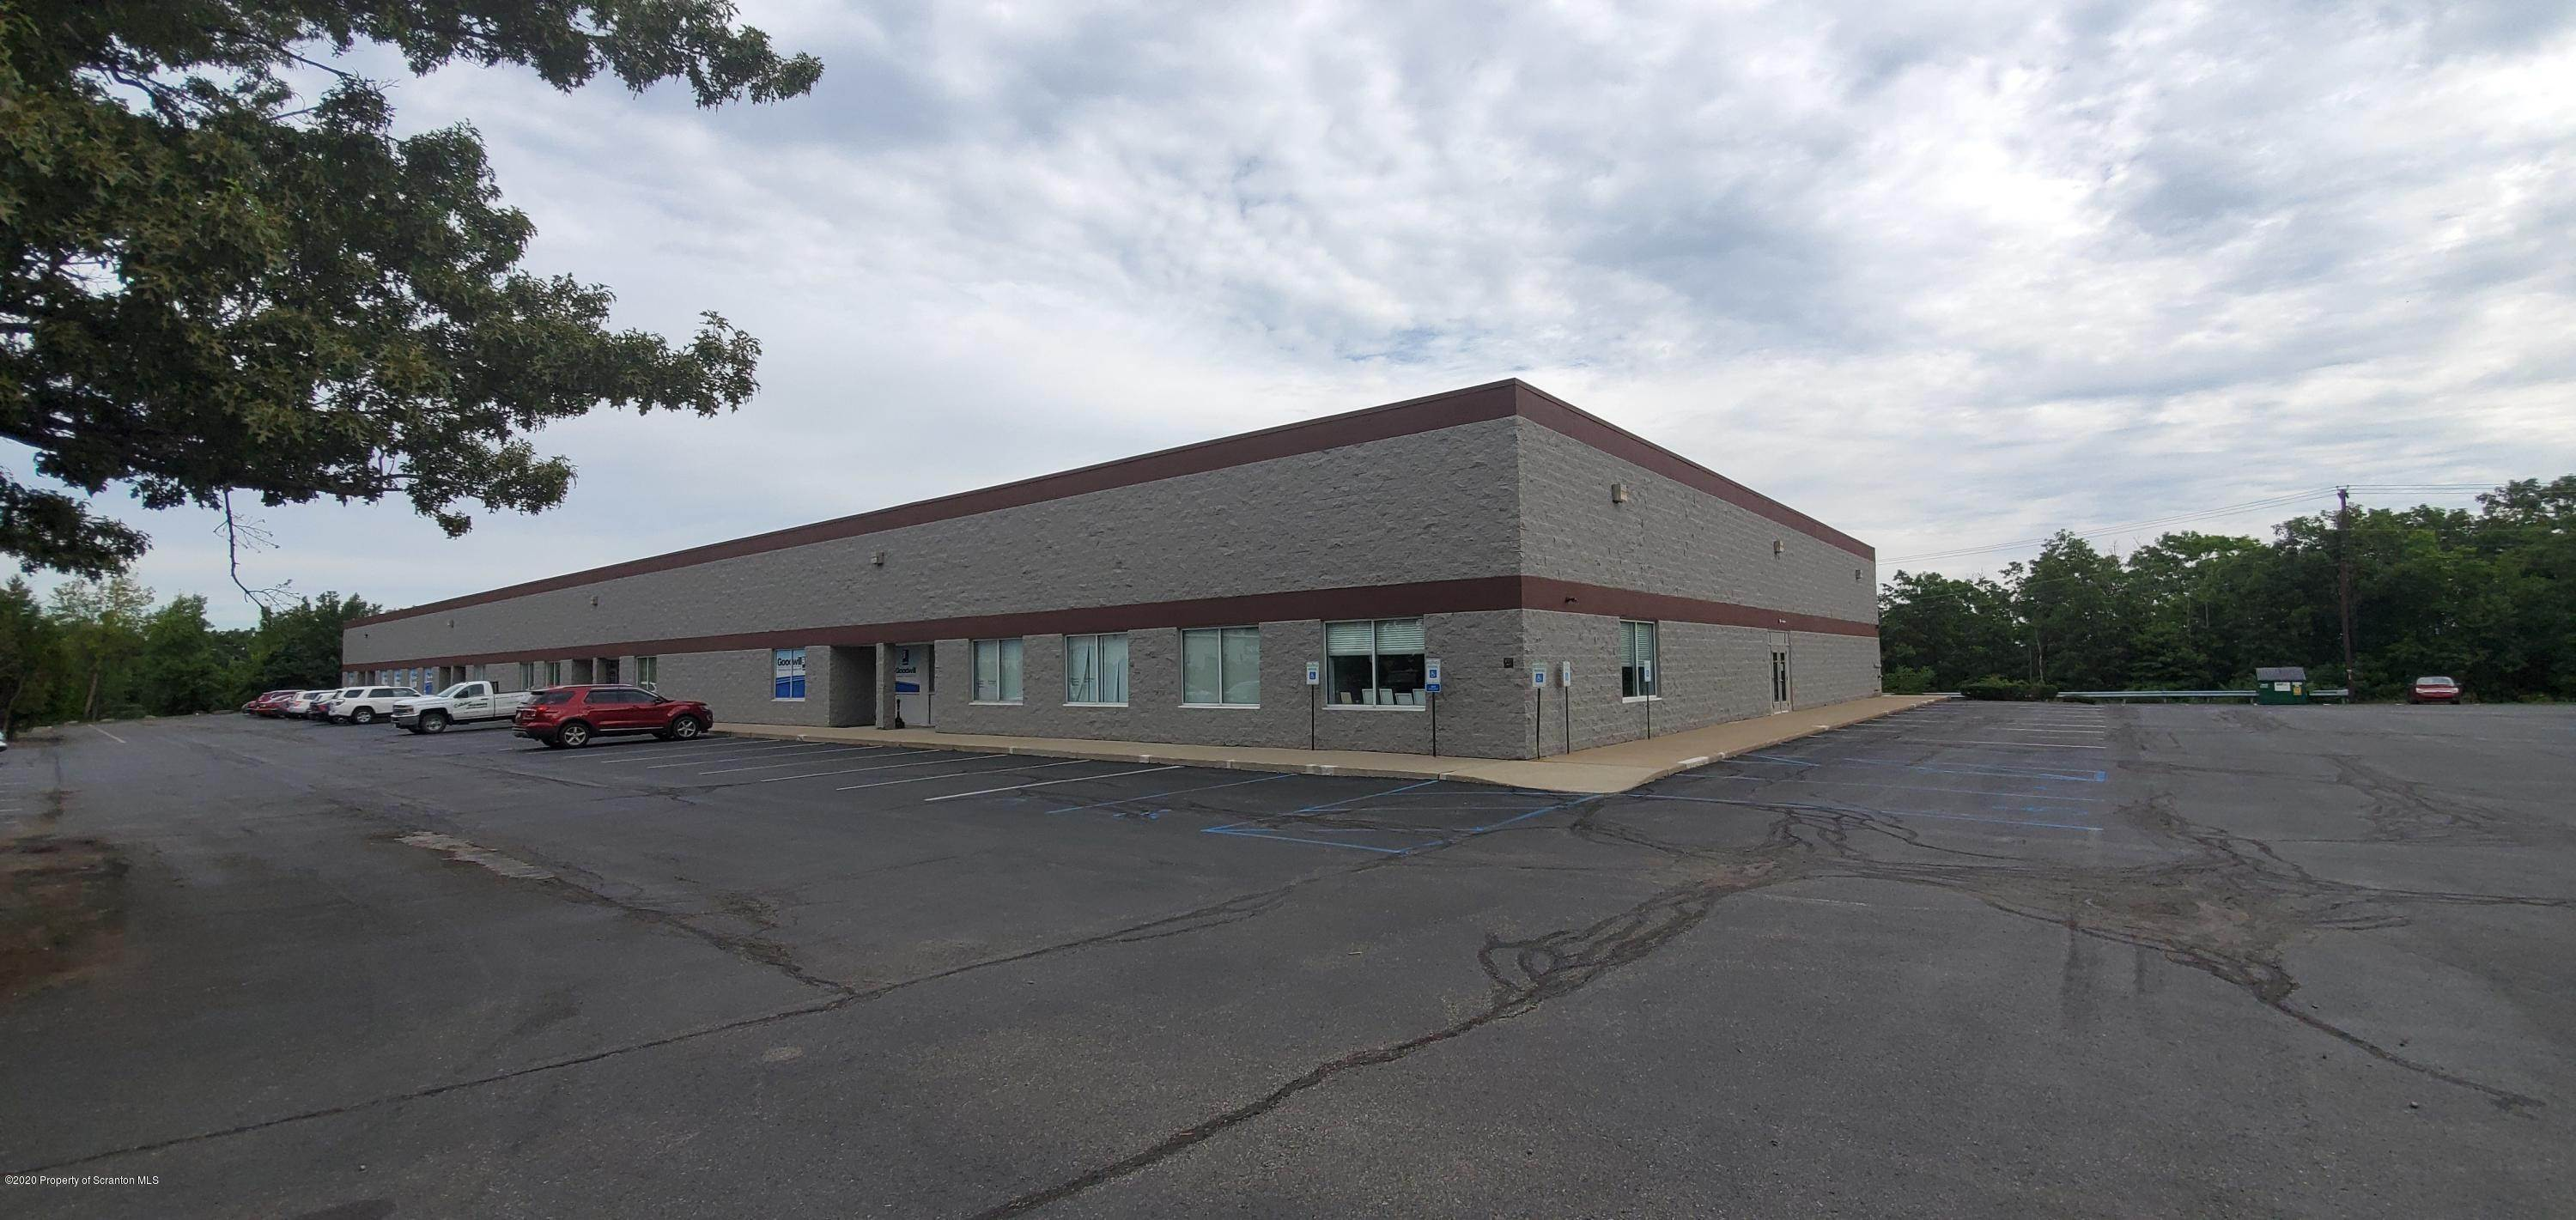 Property for Rent at 777 Keystone Industrial Park Rd Throop, Pennsylvania 18512 United States